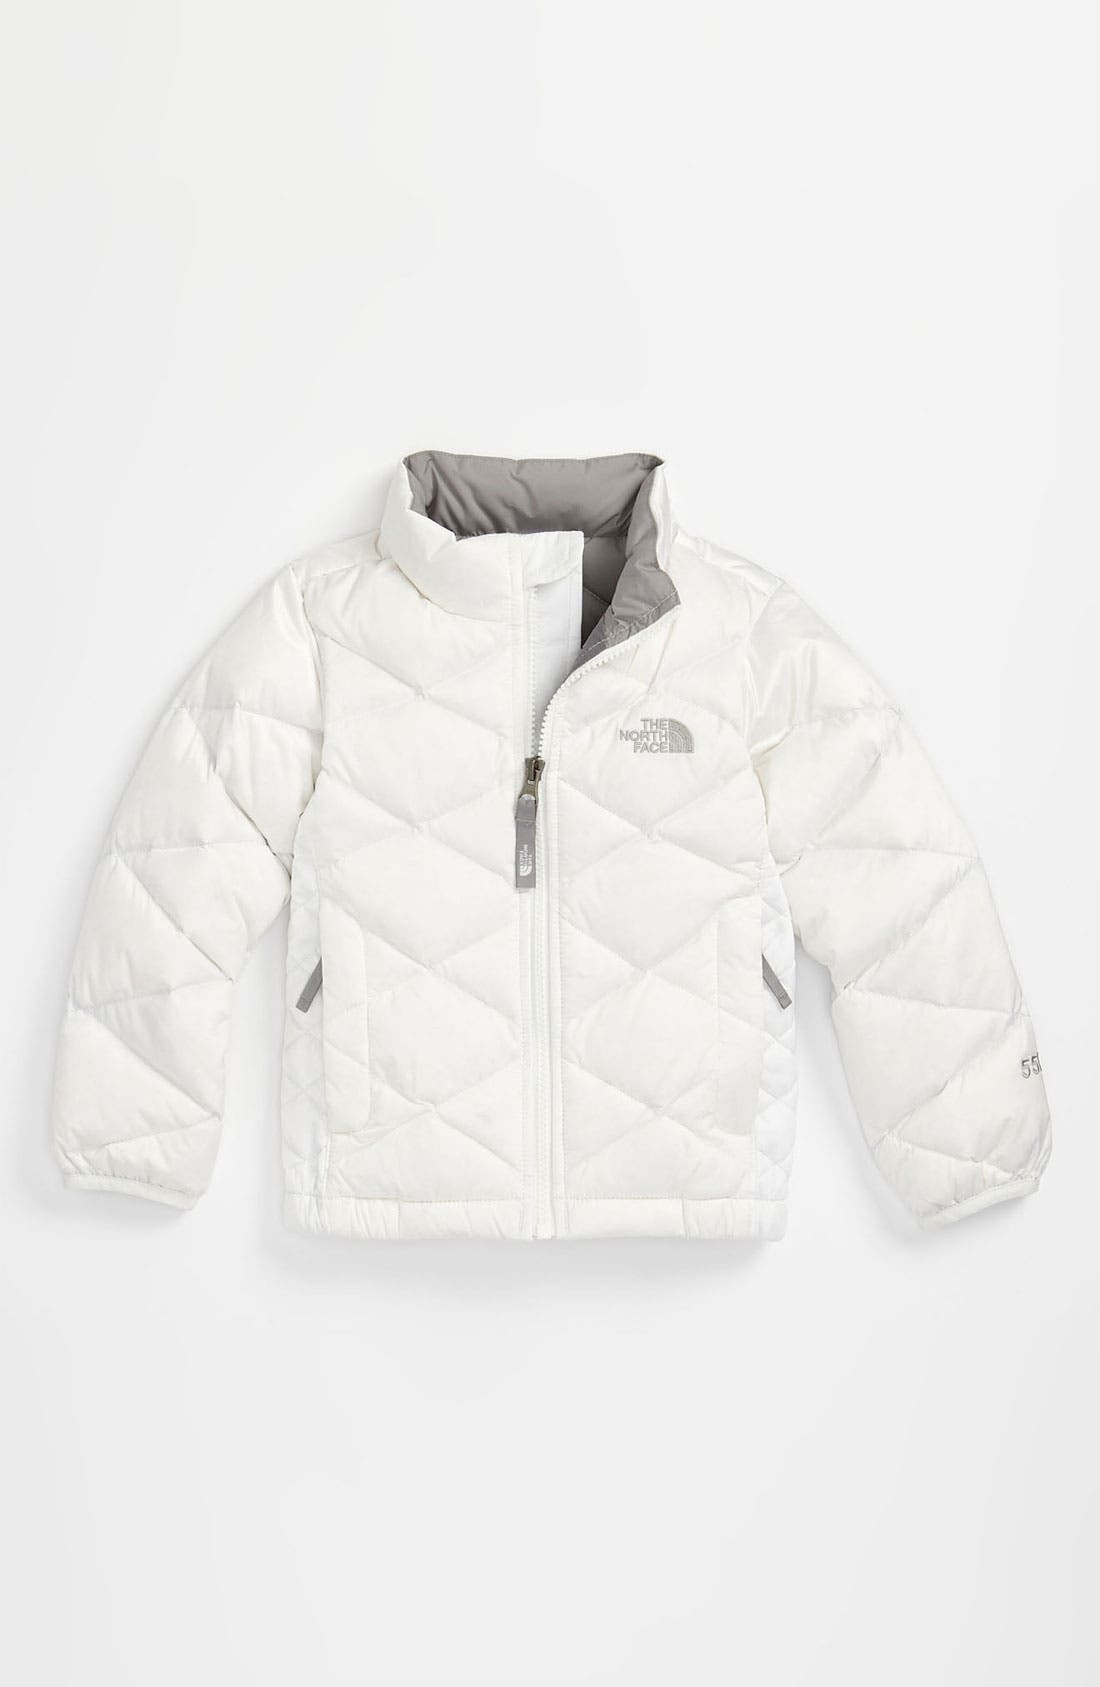 Alternate Image 1 Selected - The North Face 'Aconcagua' Jacket (Toddler)